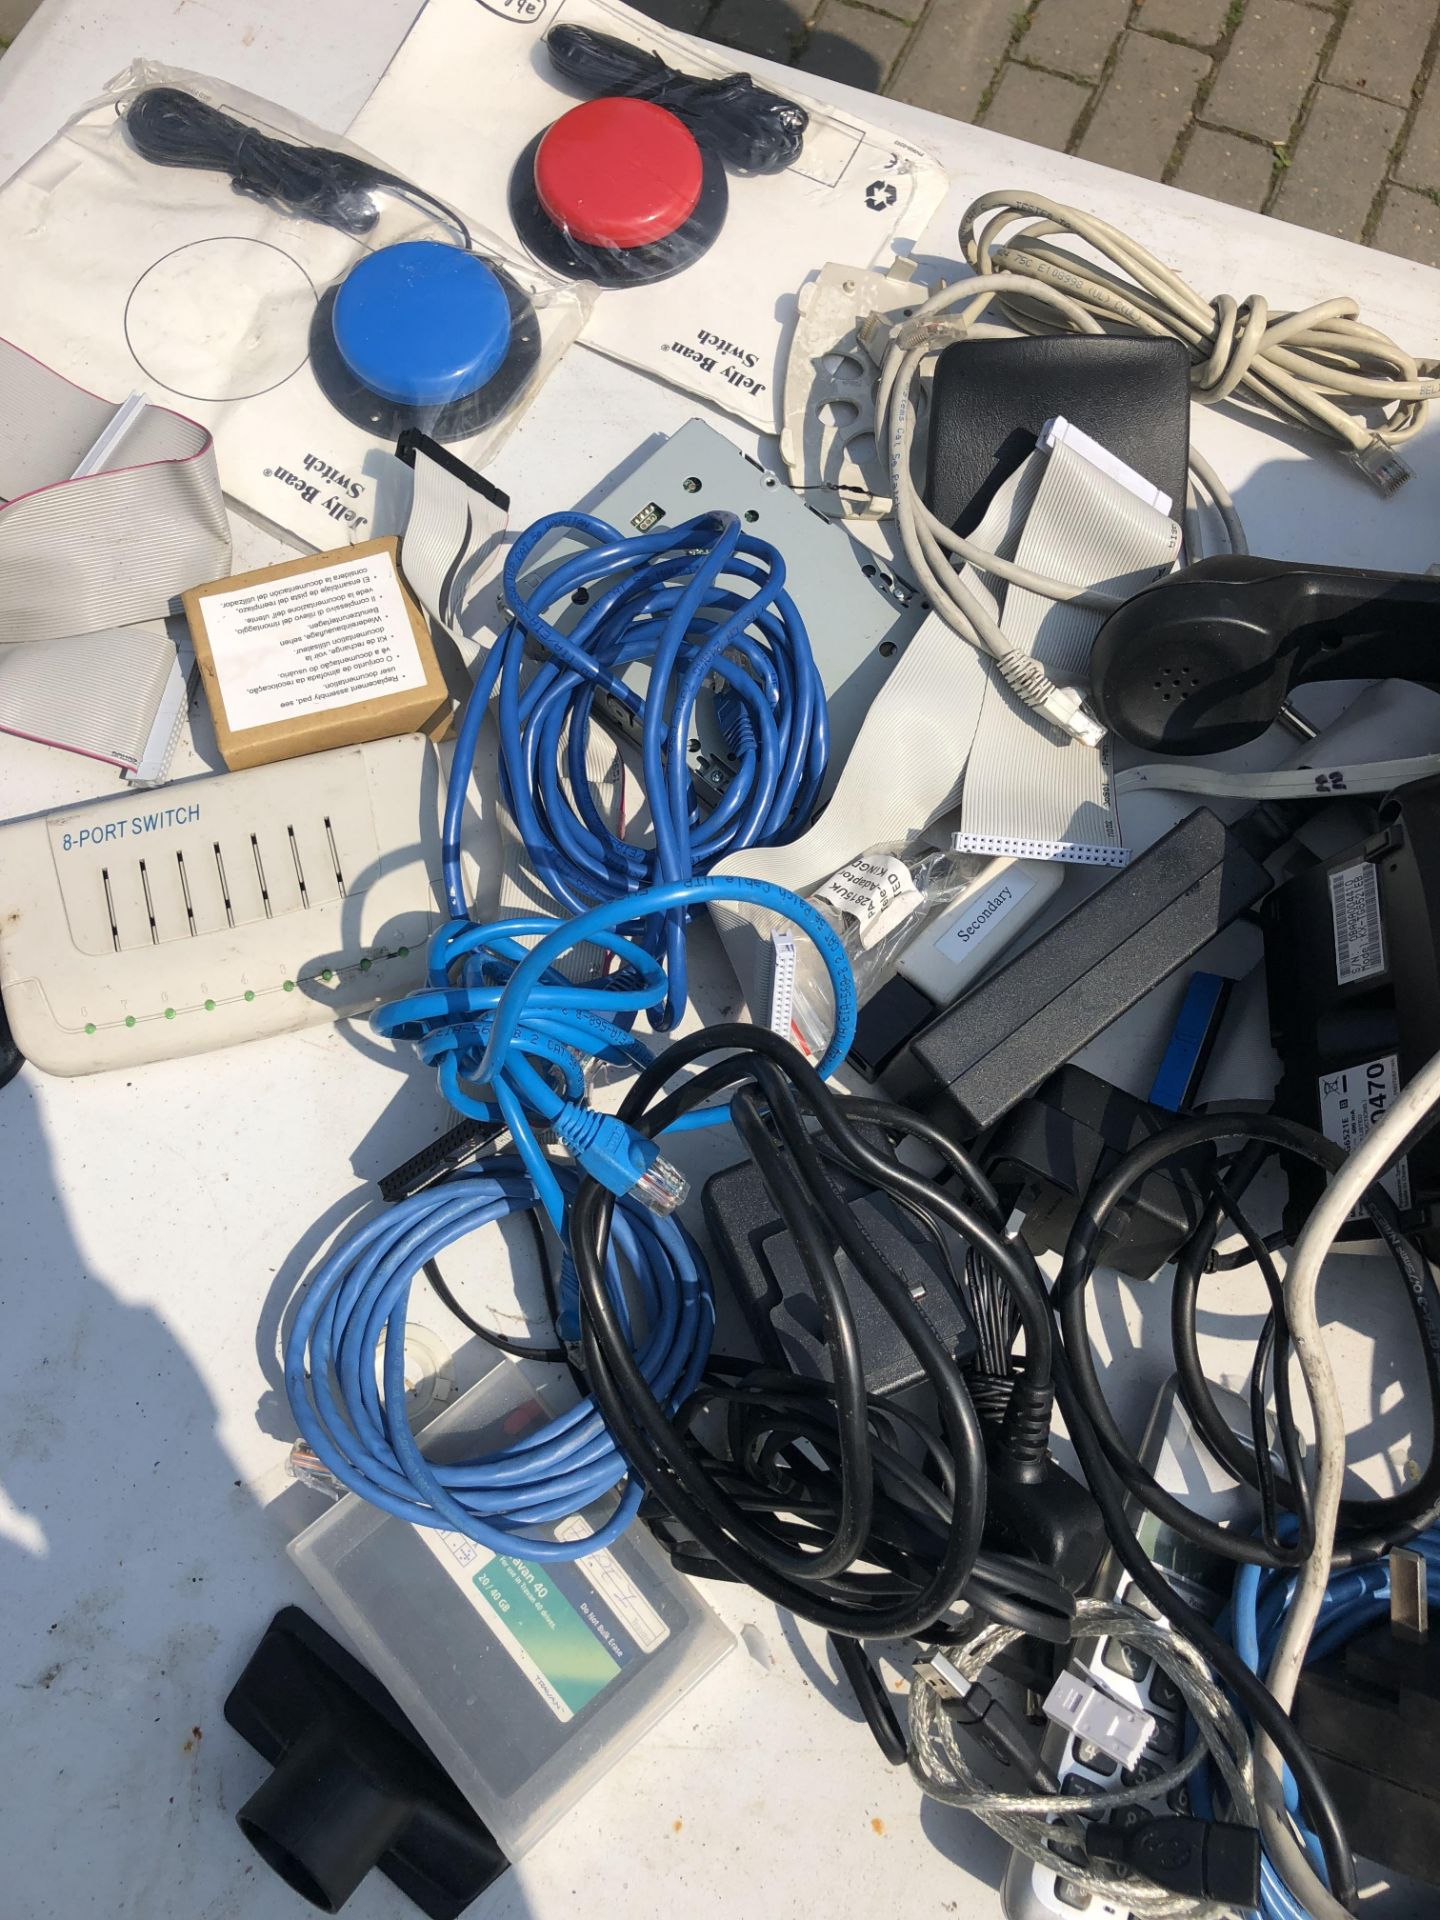 JOB LOT OF OFFICE EQUIPMENT INCLUDES PHONES MODEMS ETHERNET CABLES LAPTOP CHARGERS ETC - Image 4 of 5